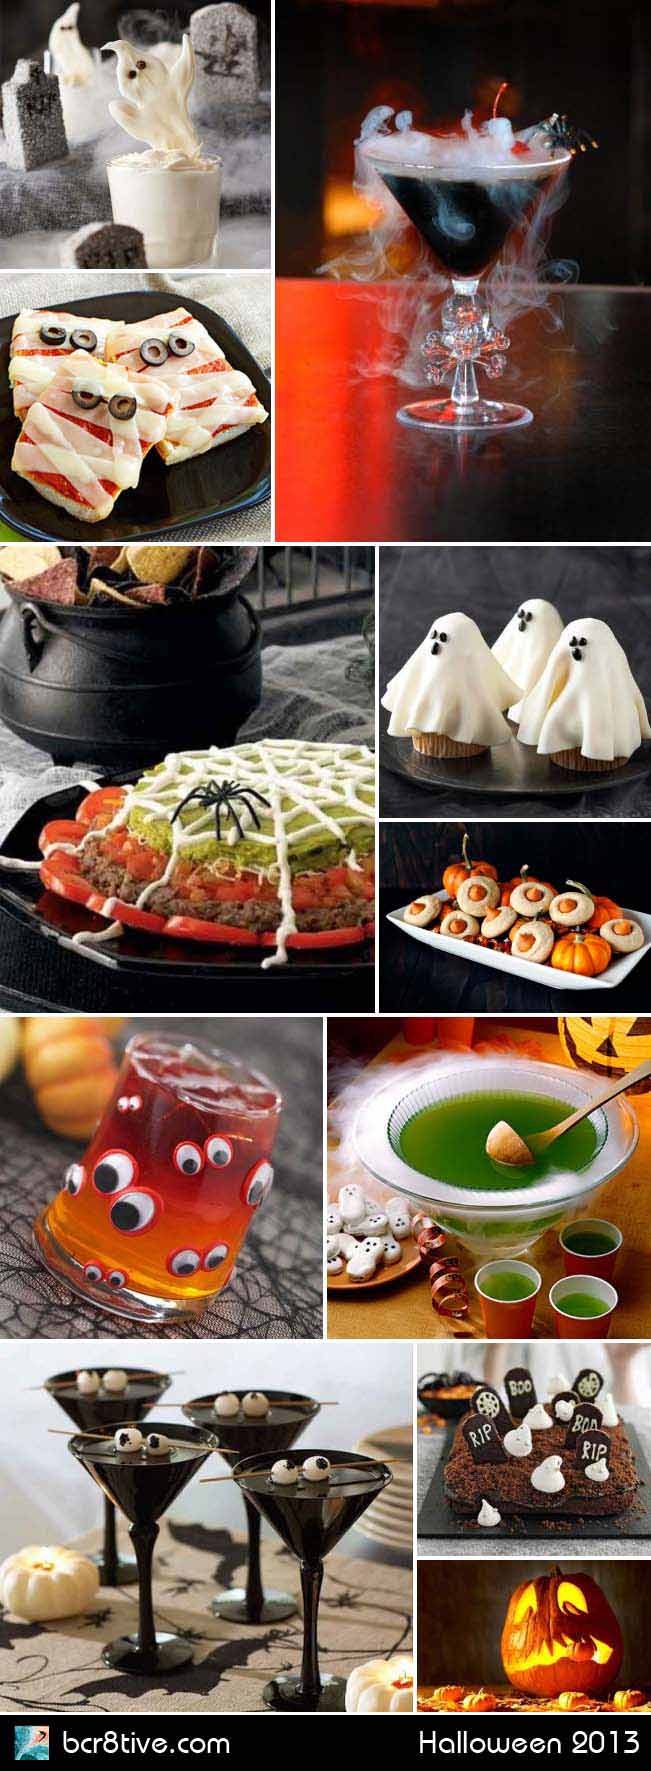 Halloween Party Ideas - bcr8tive